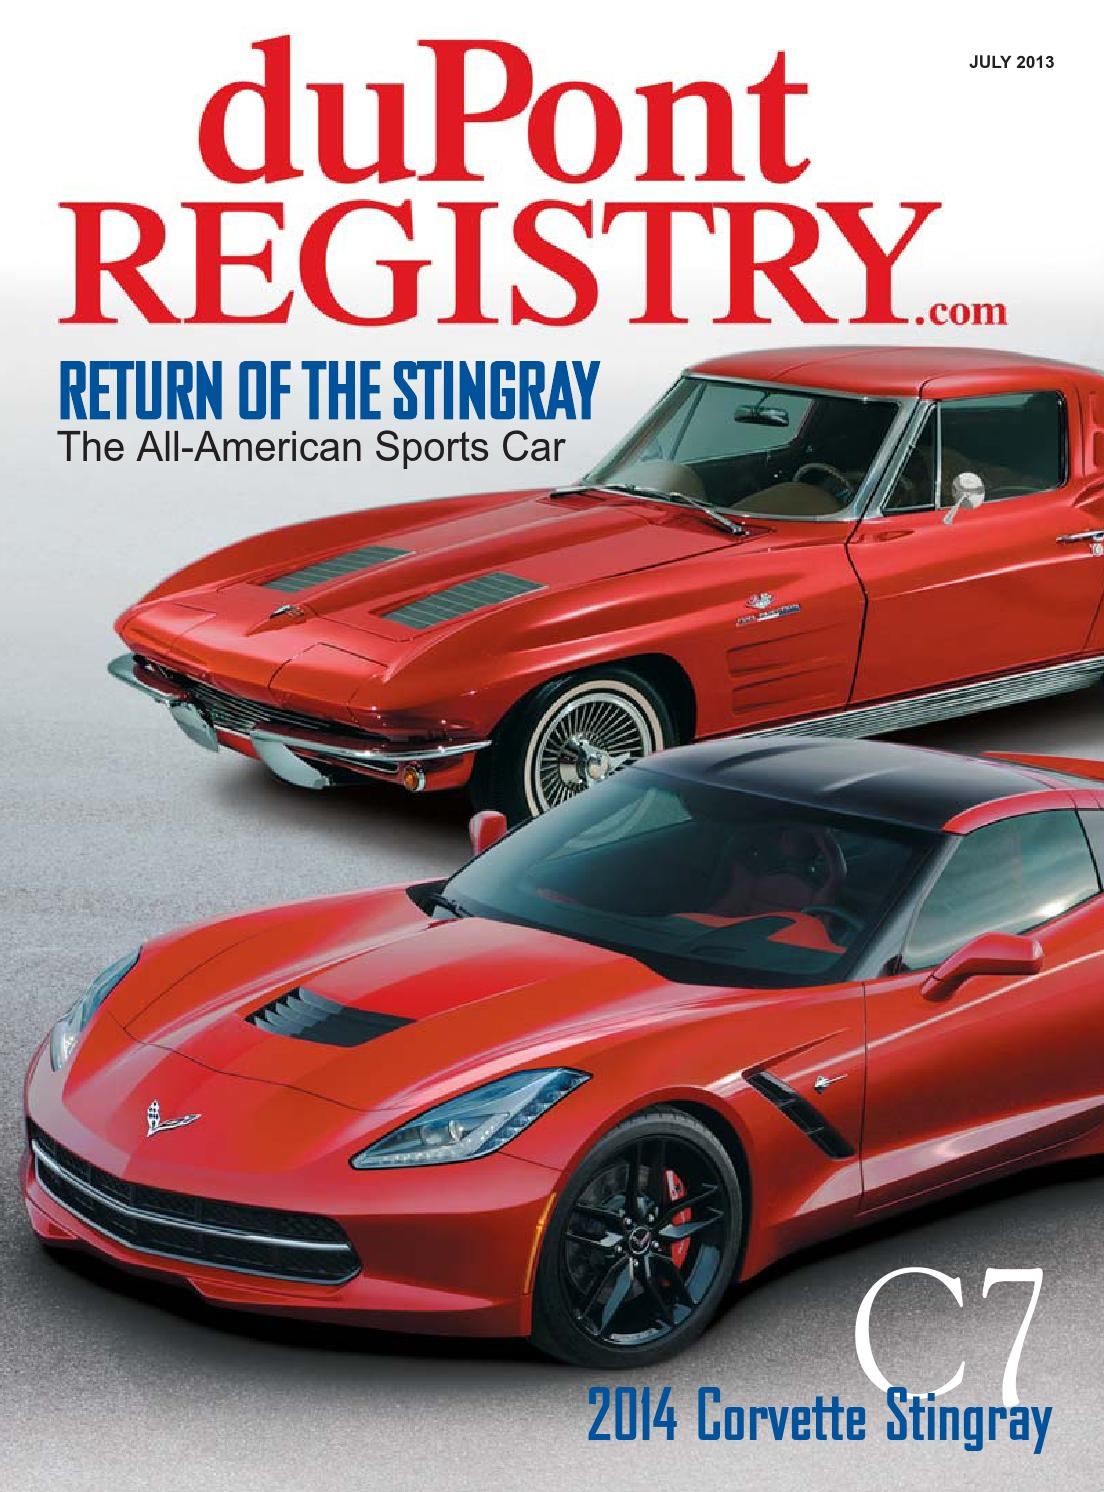 duPontREGISTRY Autos July 2013 by duPont REGISTRY Issuu